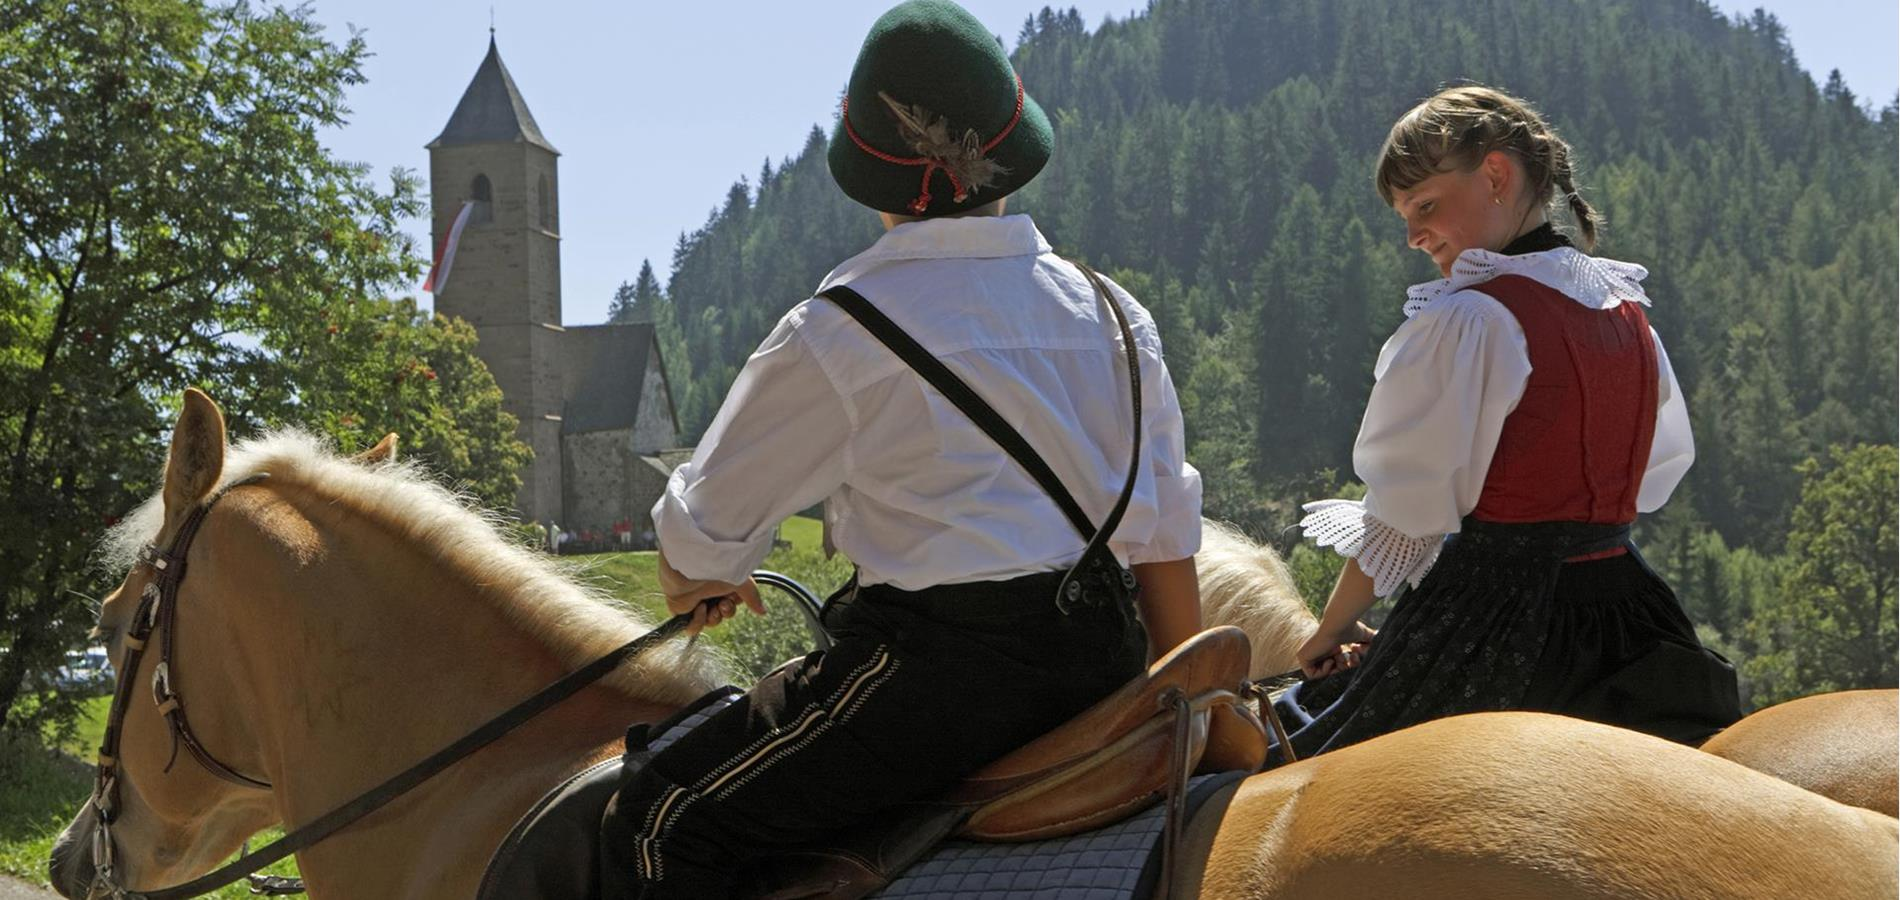 Horse-riding-Events-with-horses-Avelengo-Verano-Merano2000-fb